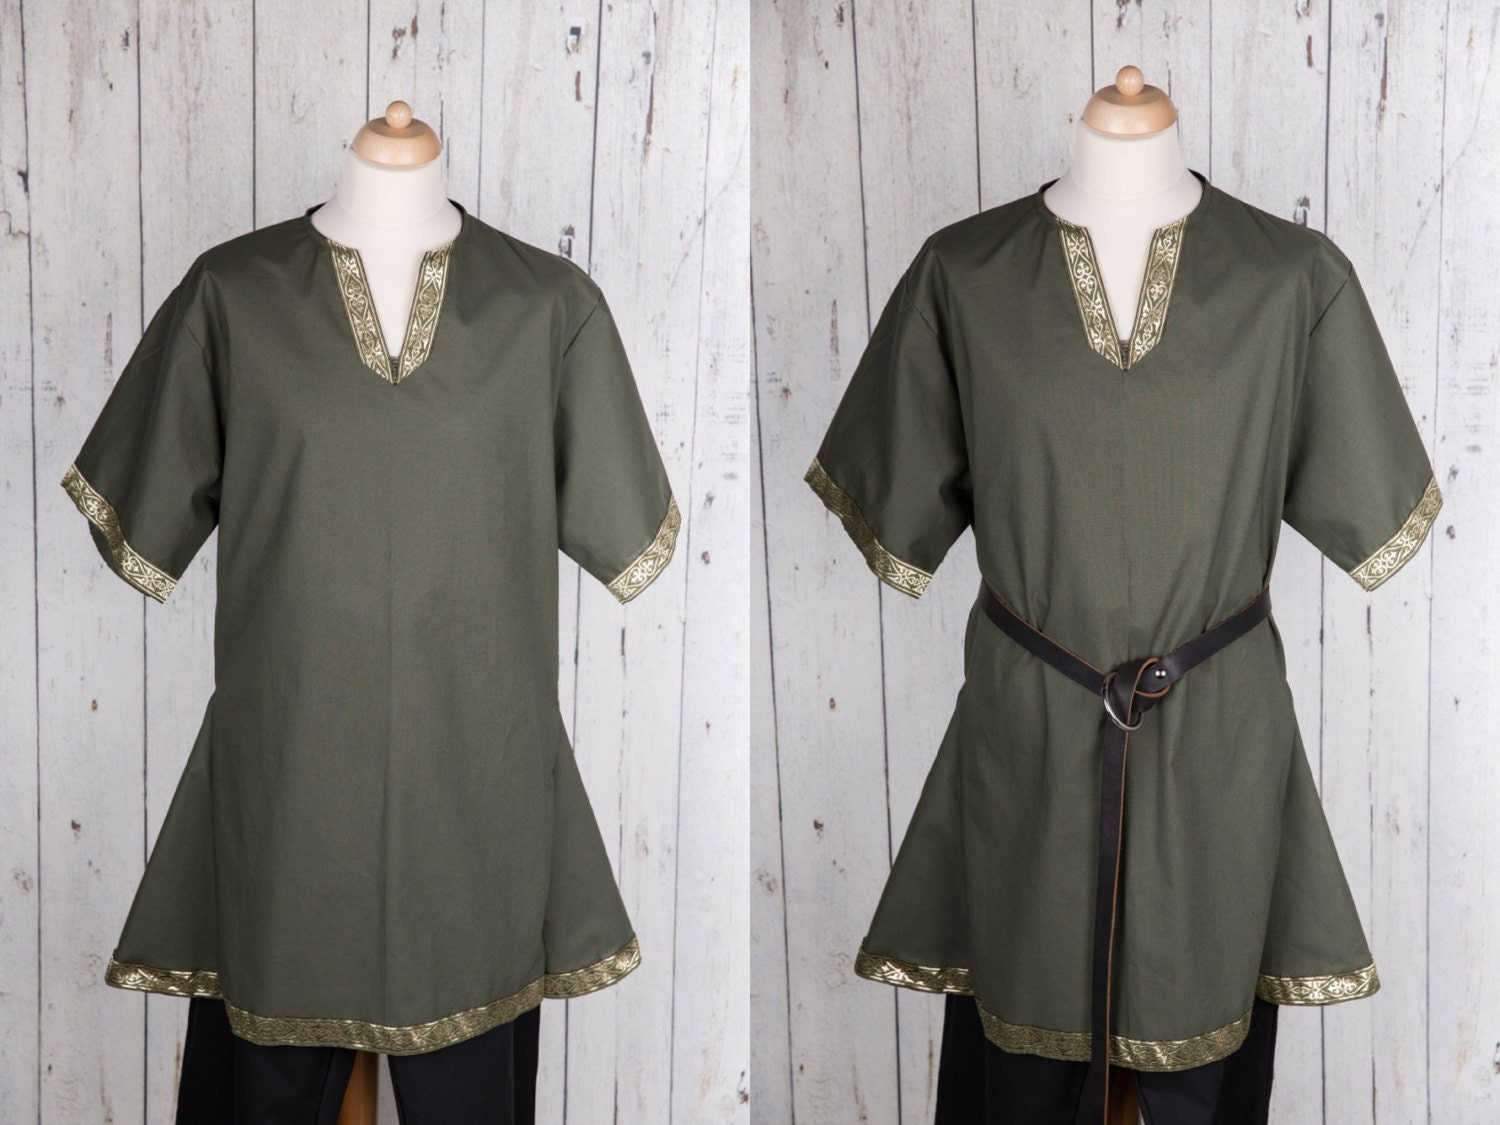 You searched for: mens green tunic! Etsy is the home to thousands of handmade, vintage, and one-of-a-kind products and gifts related to your search. No matter what you're looking for or where you are in the world, our global marketplace of sellers can help you find unique and affordable options.